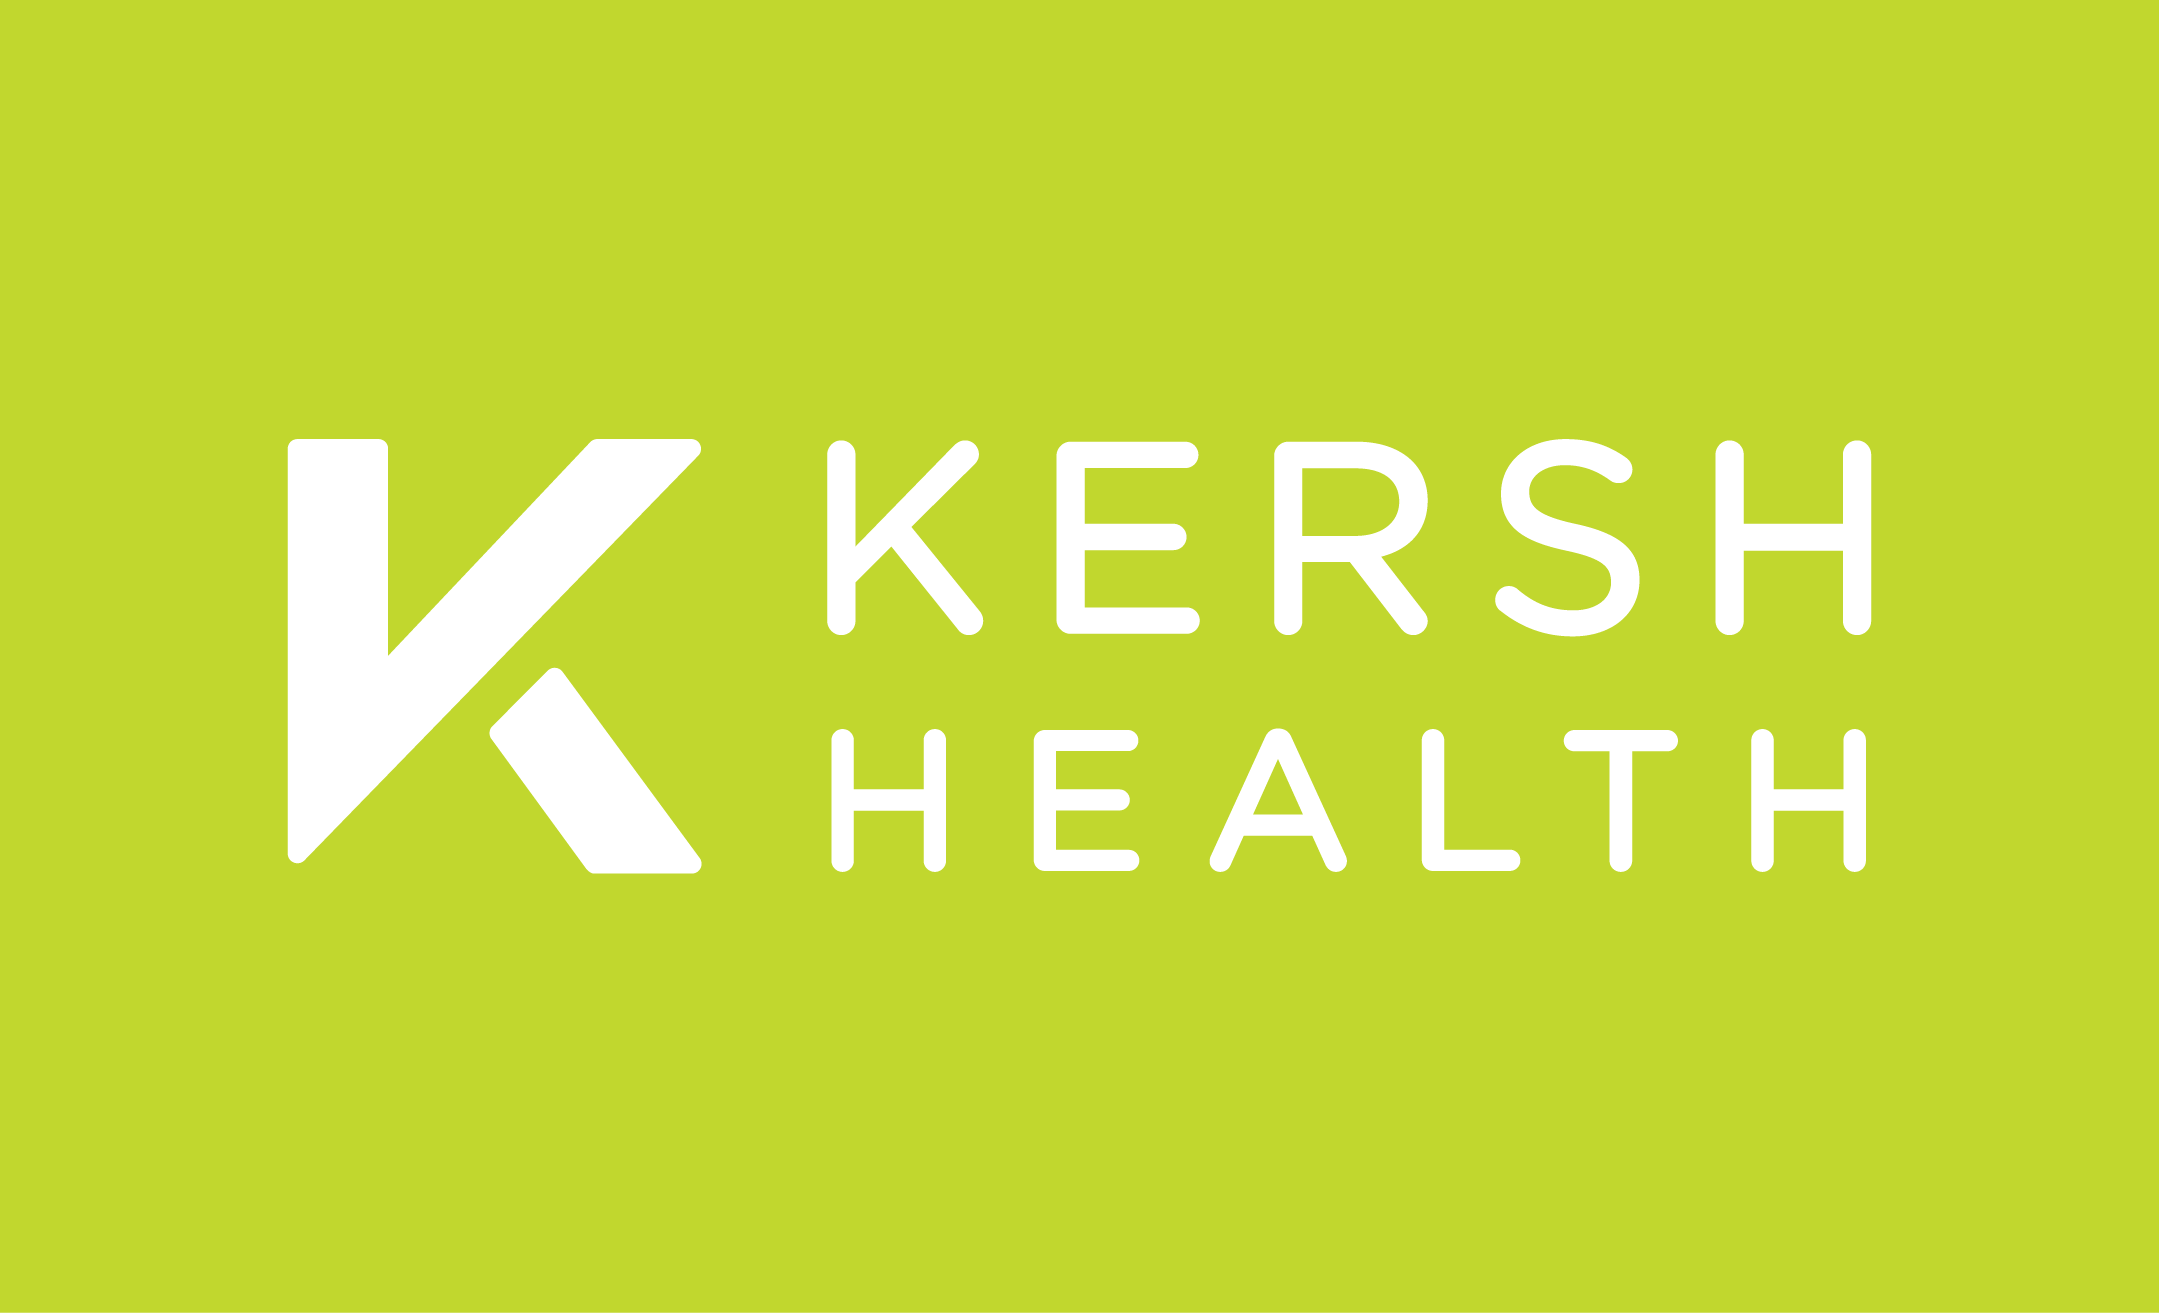 Kersh Health